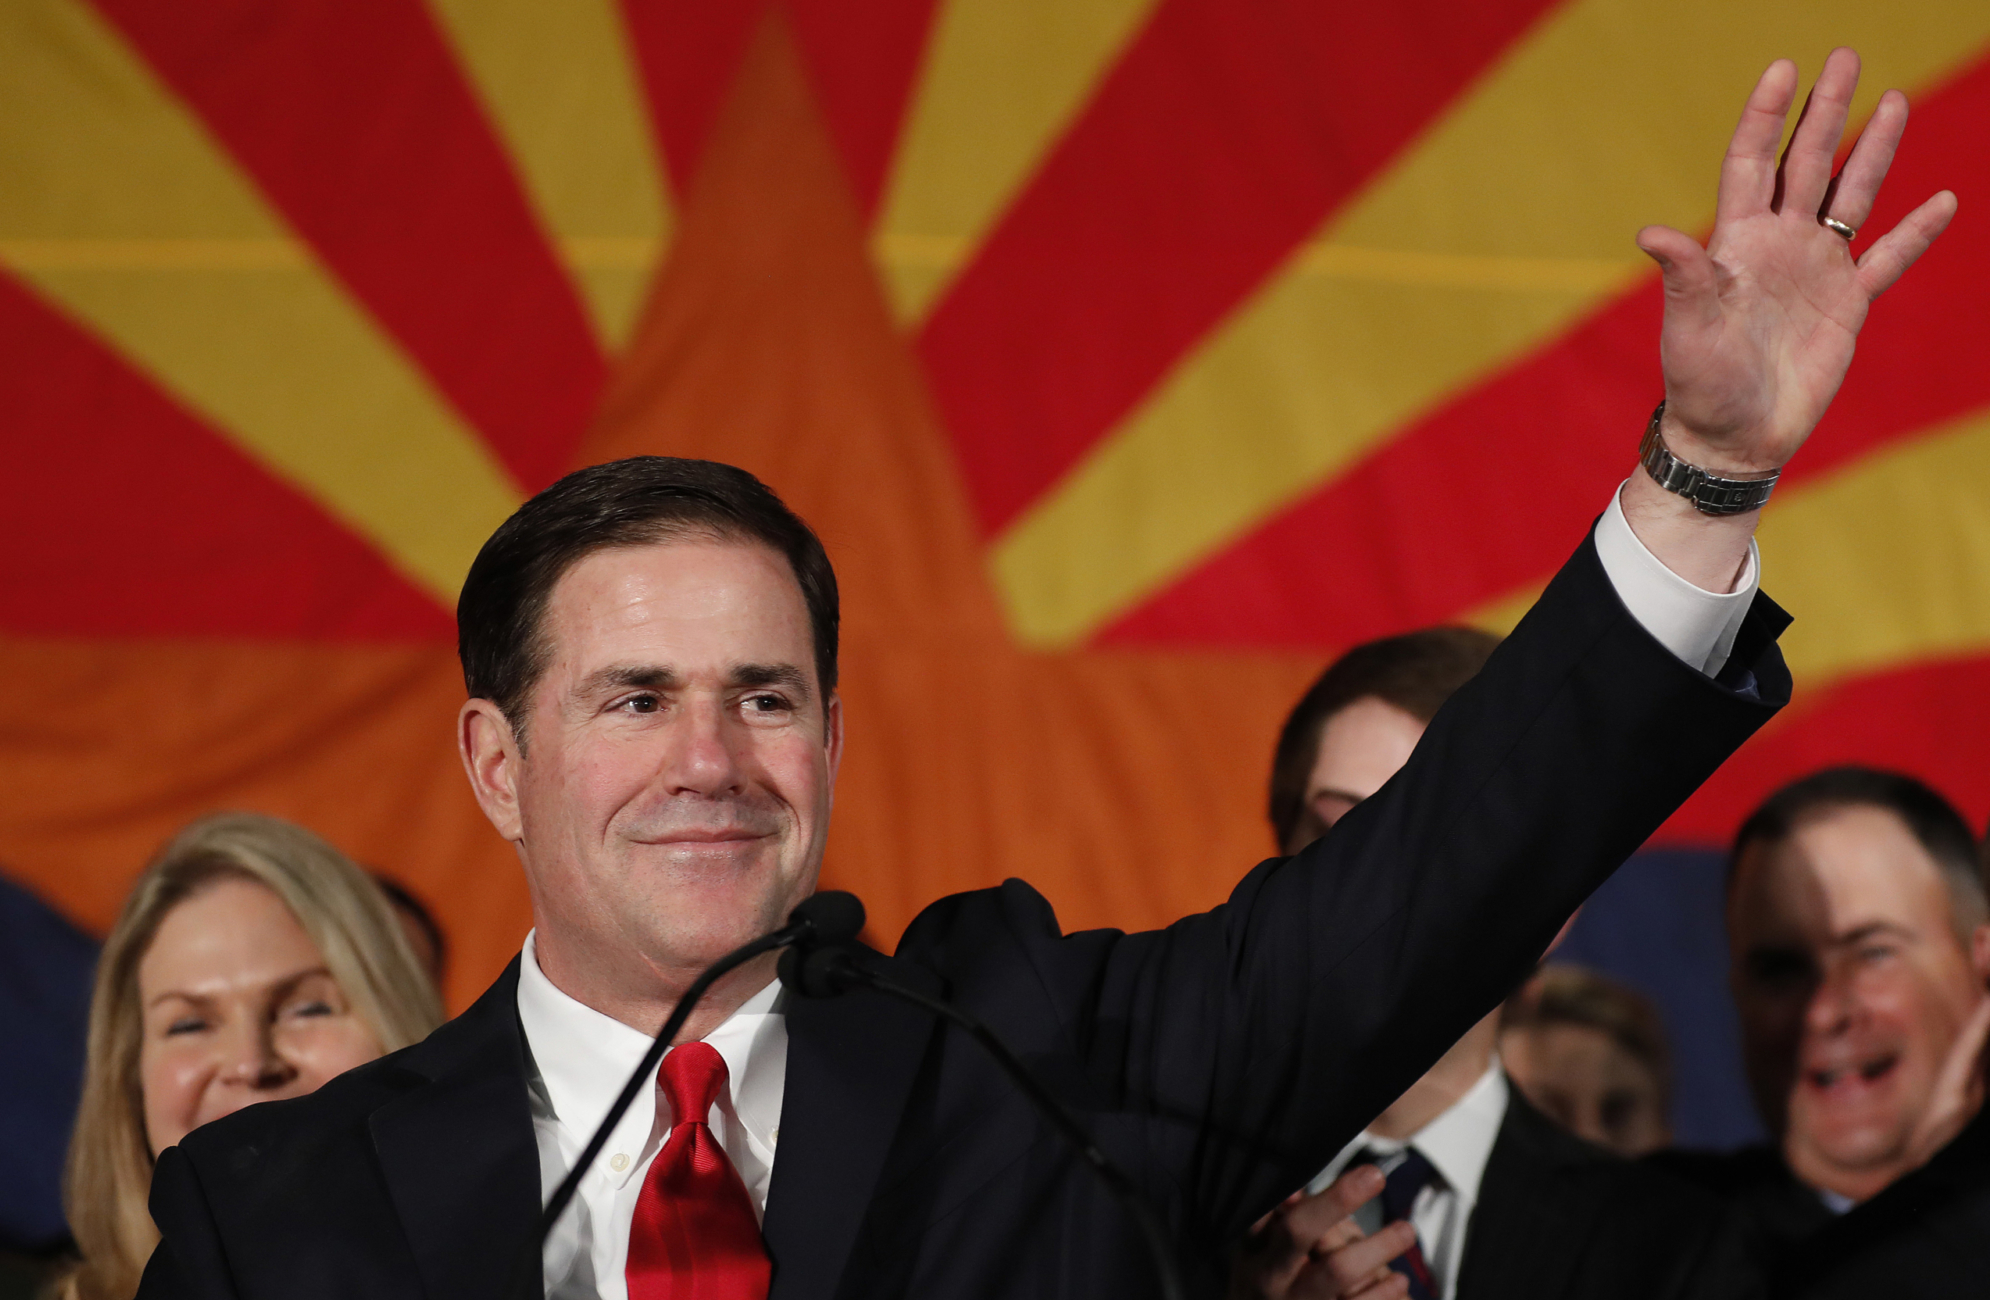 arizona governor doug ducey waving with the state flag of arizona in the background